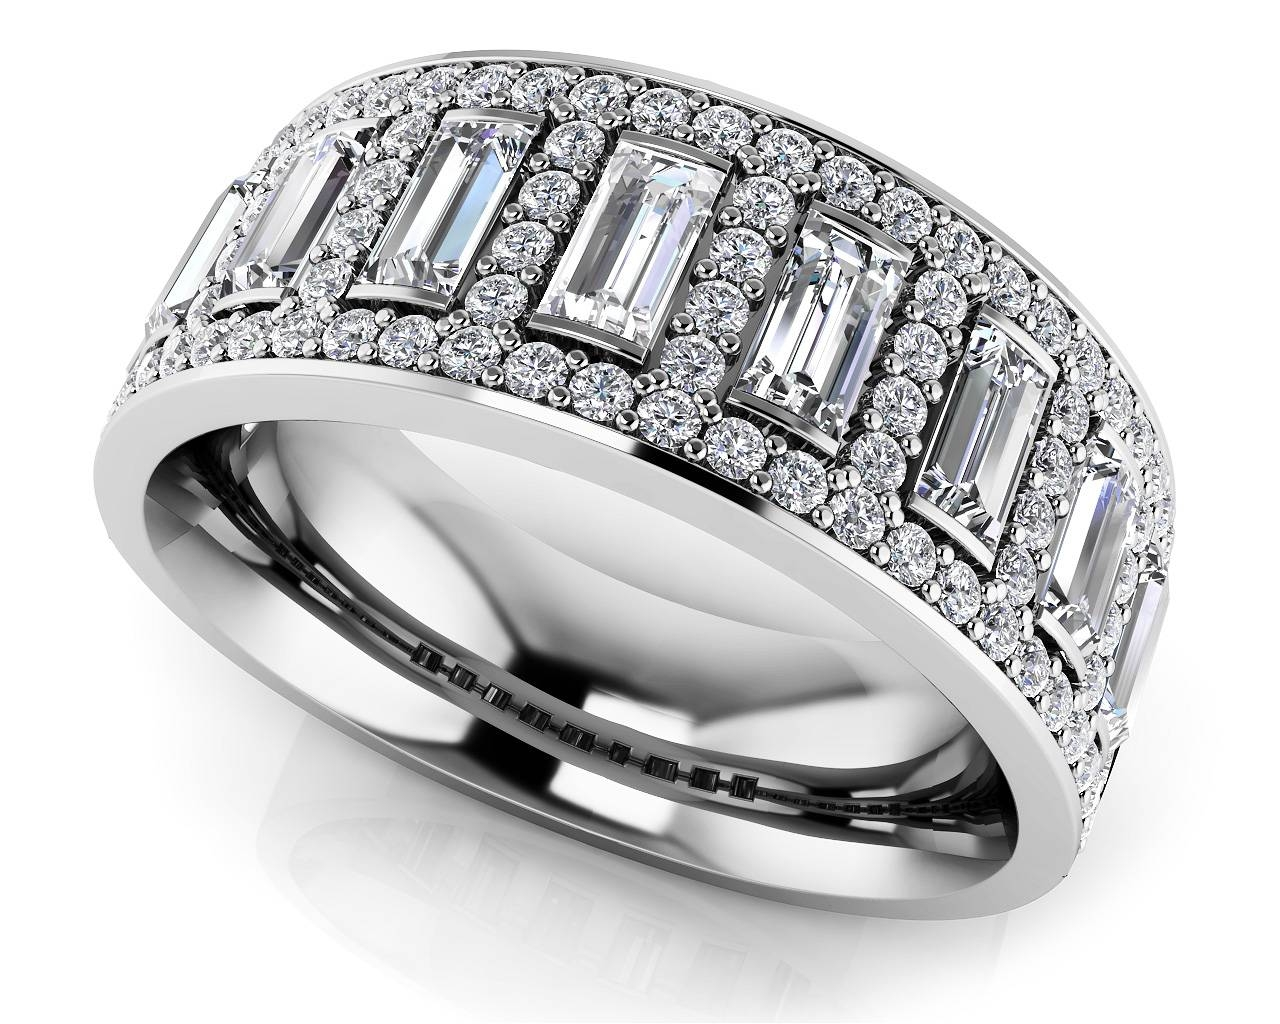 Design Your Own Diamond Anniversary Ring & Eternity Ring Throughout Newest Diamonds Anniversary Rings (View 9 of 25)